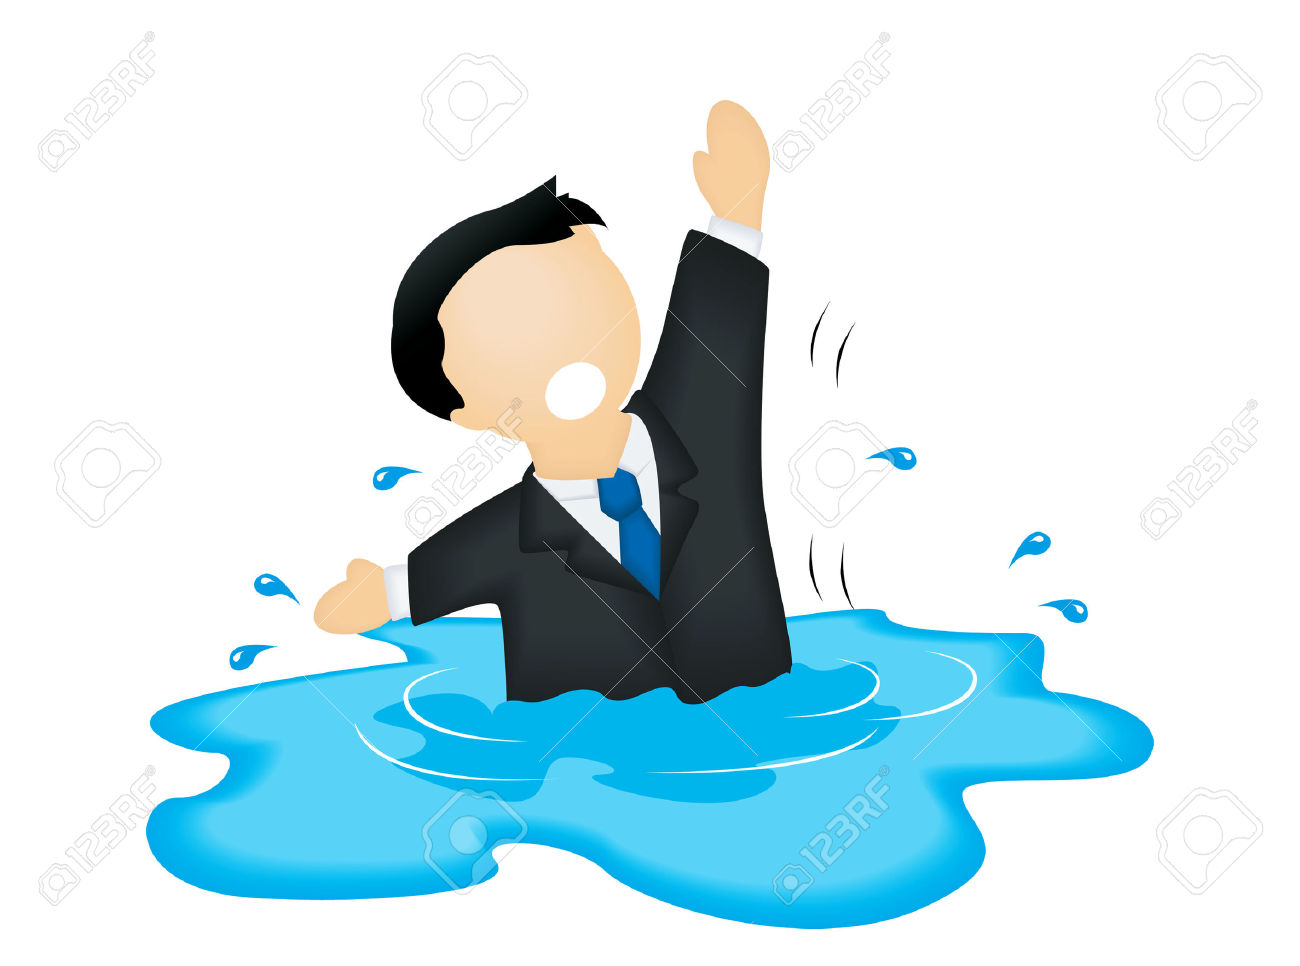 Clipart drowning graphic freeuse download 71+ Drowning Clipart   ClipartLook graphic freeuse download